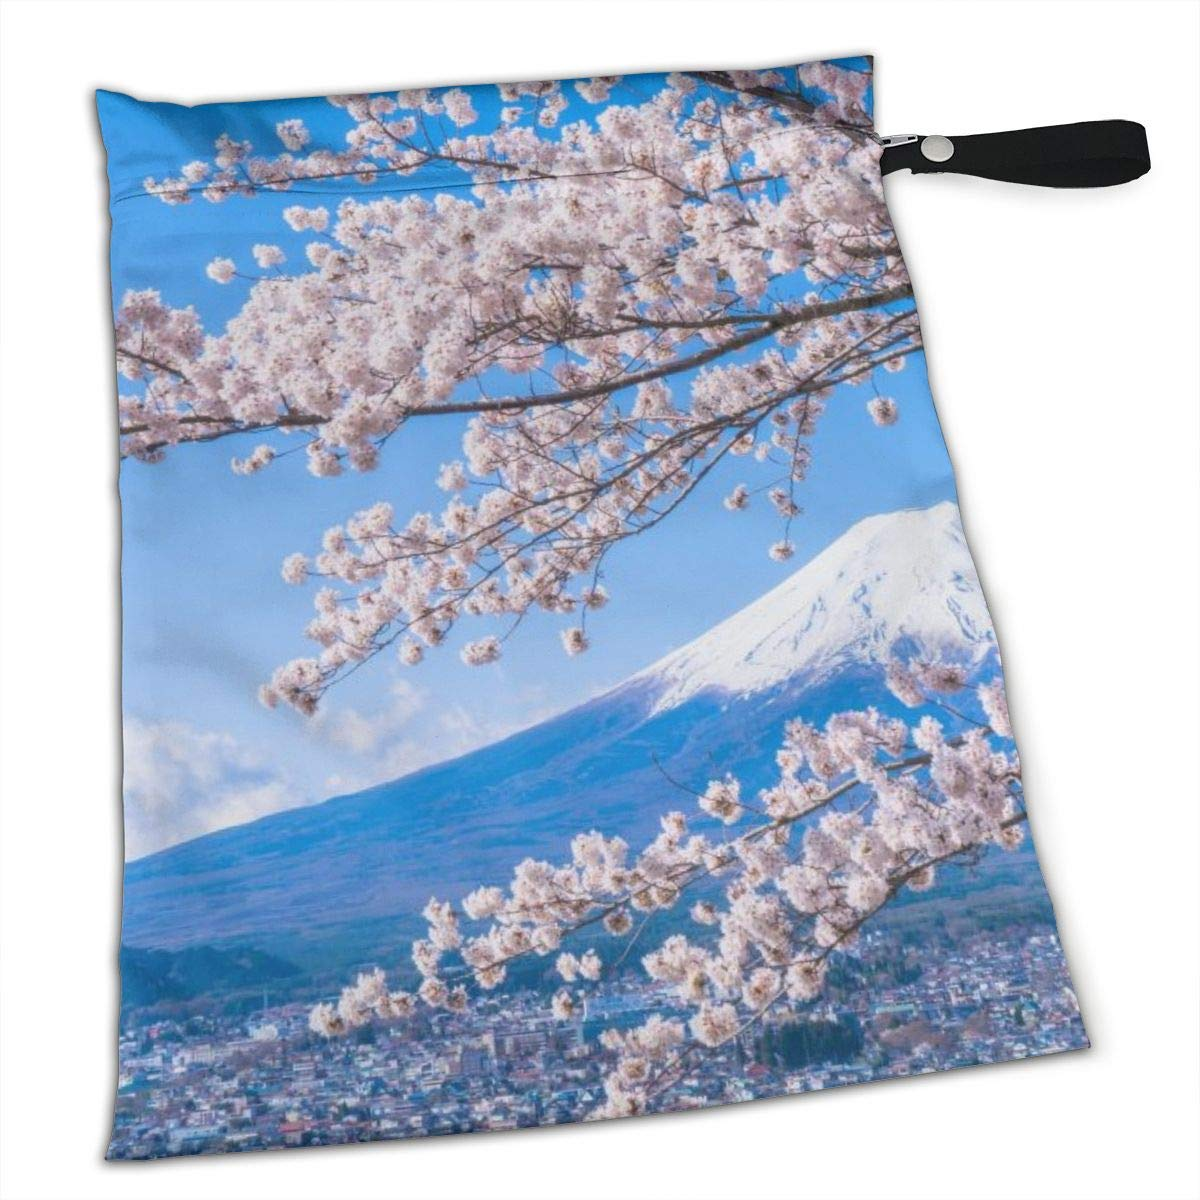 Japan's Mount Fuji and Cherry Blossoms Waterproof Wet Bag, Washable, Reusable for Travel, Beach, Pool, Stroller, Diapers, Dirty Gym Clothes, Wet Swimsuits, Toiletries, Electronics, Toys by CHAOXI